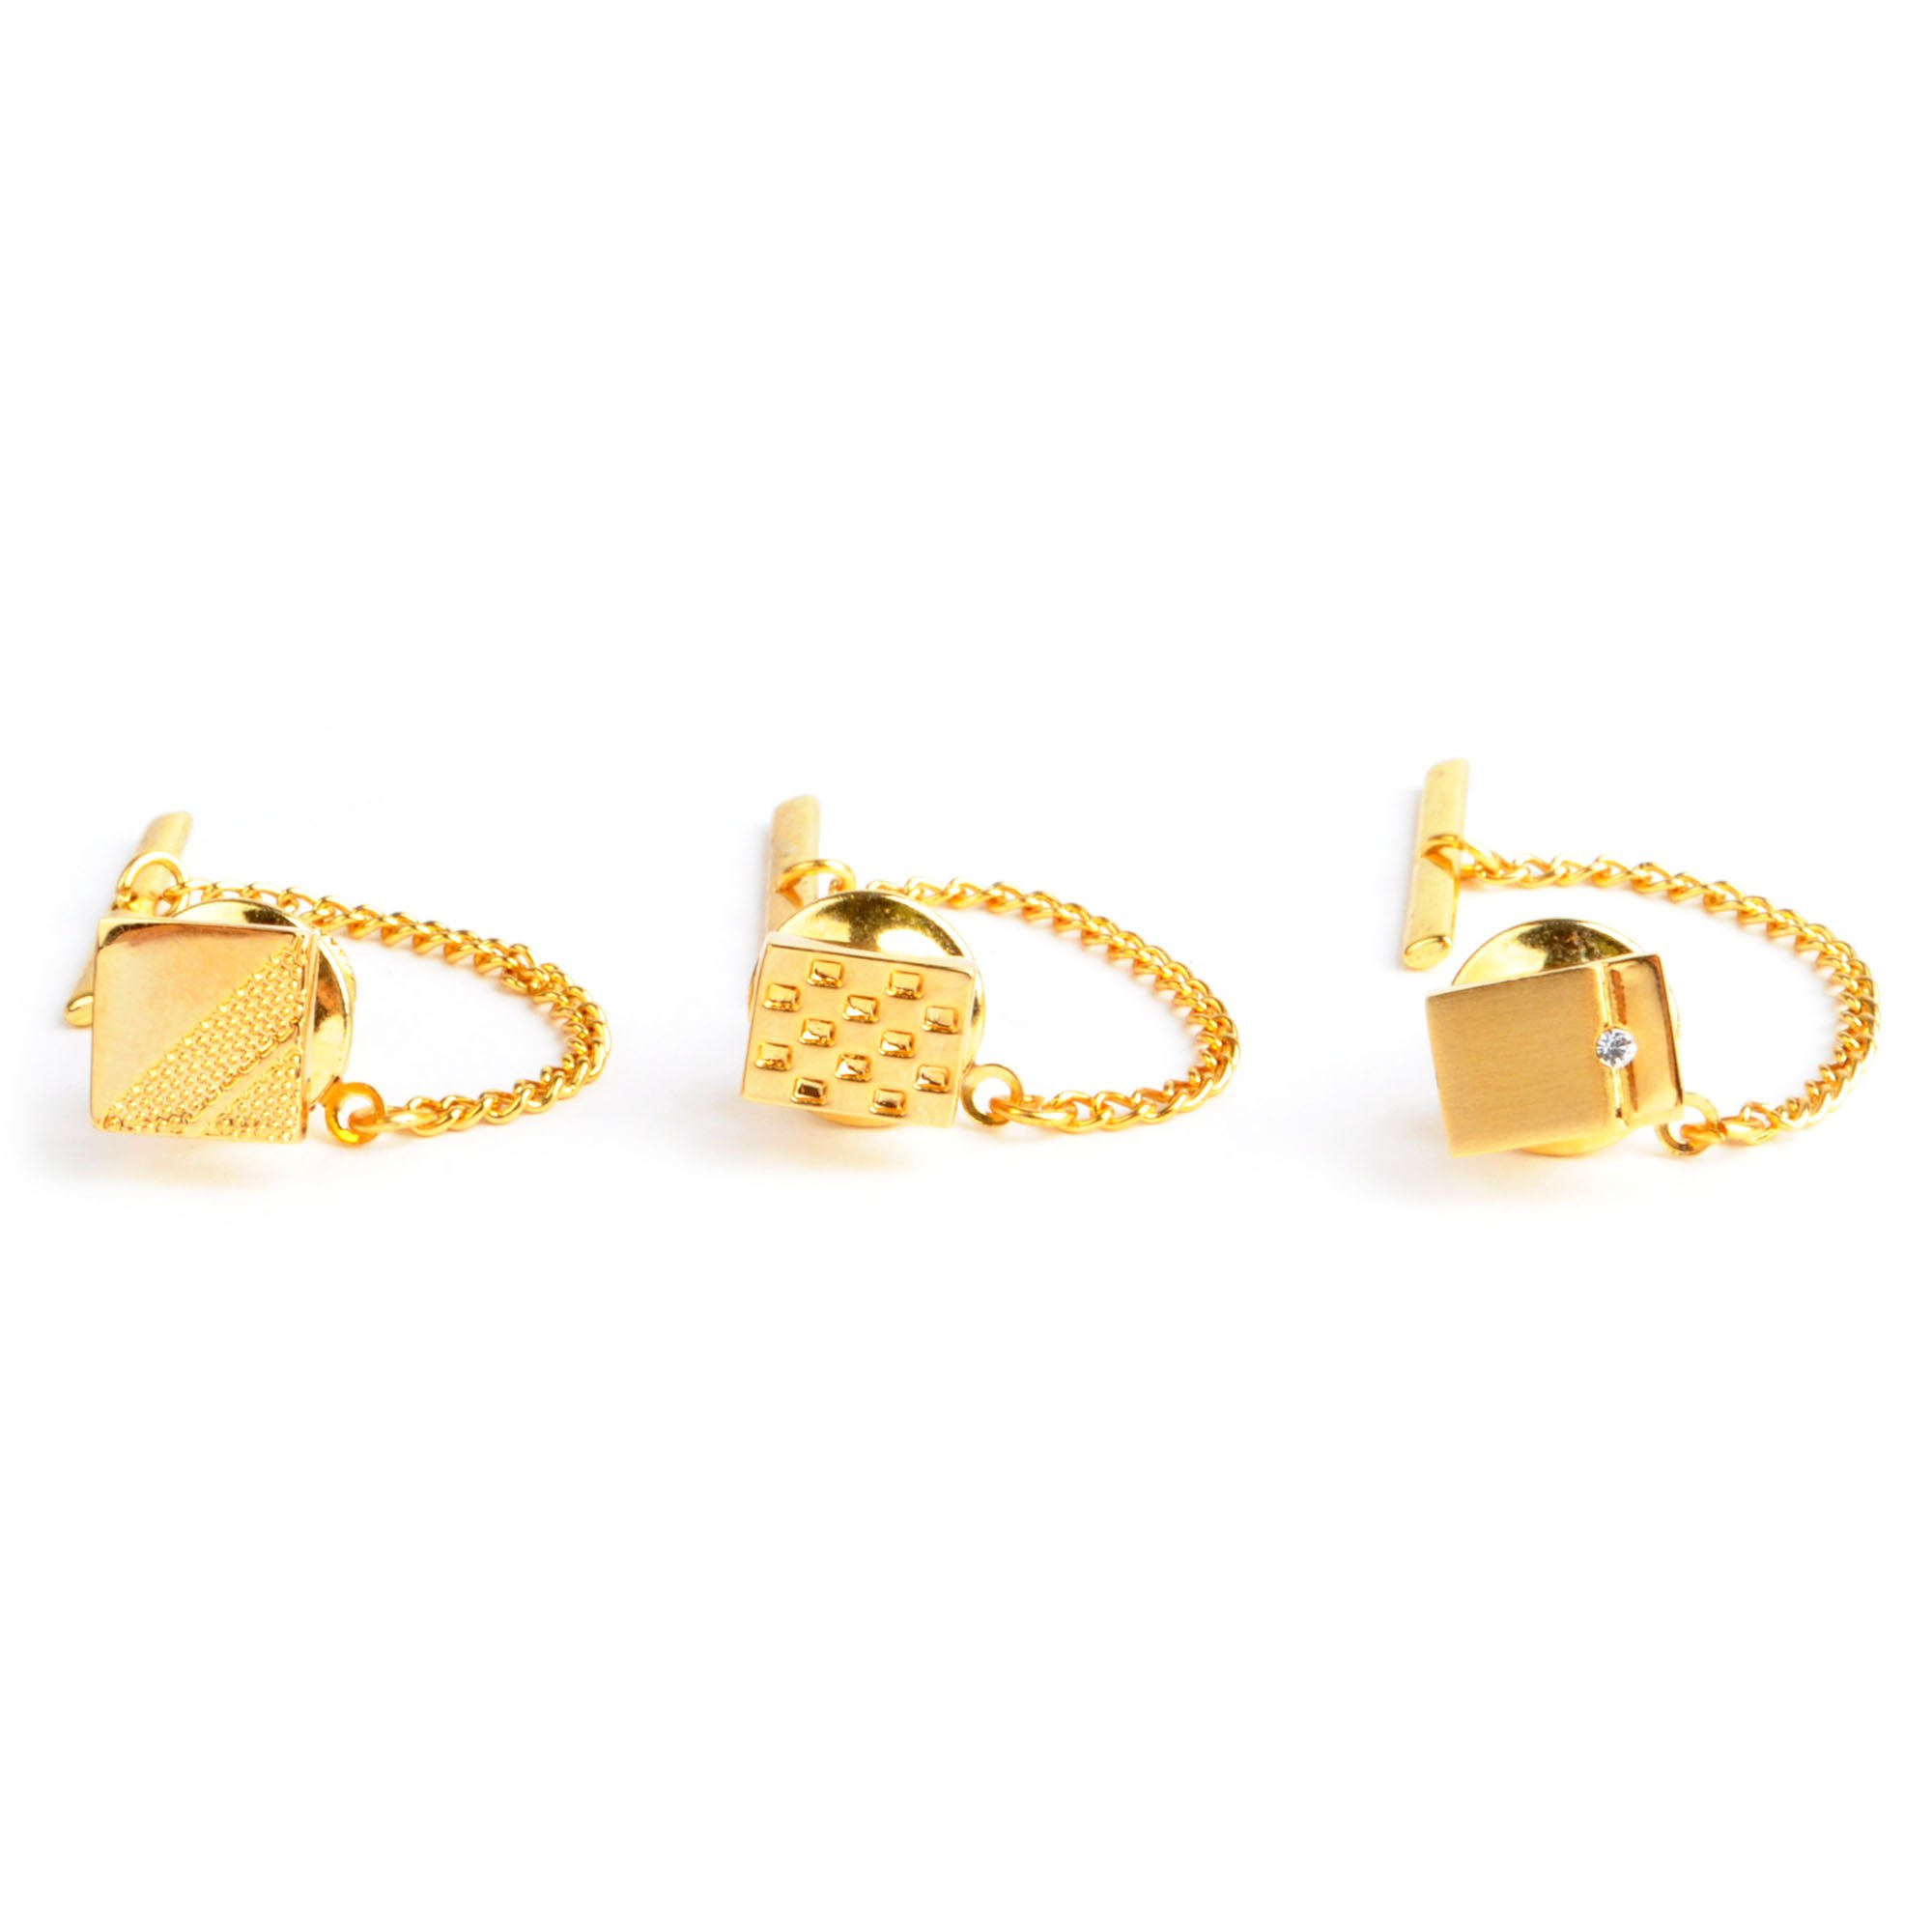 Gold Tone Square & Rectangle Tie Tack Set - 3 Pack